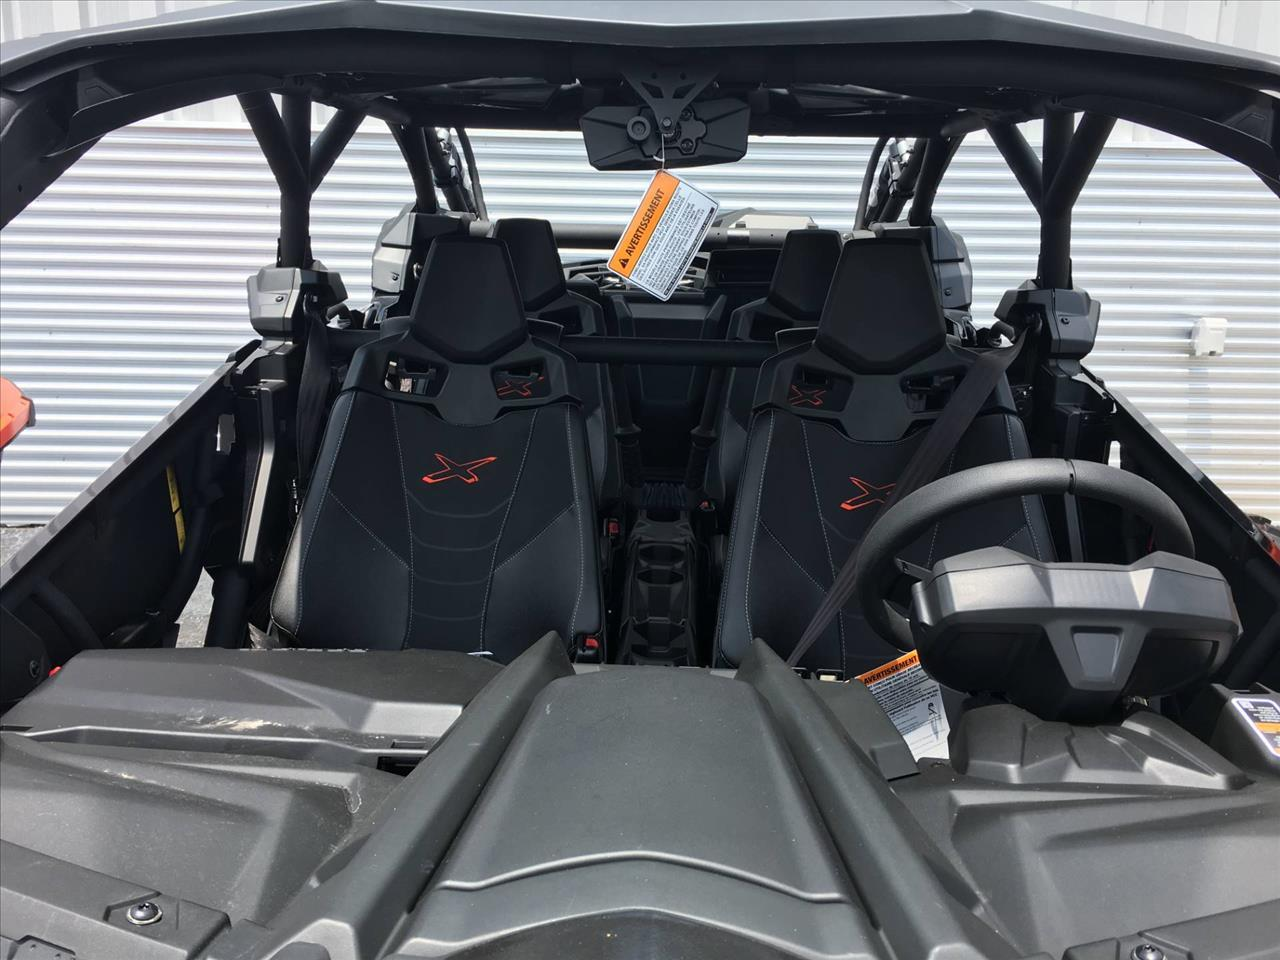 2017 Can-Am Maverick X3 Max X rs Turbo R for sale at Vehicle Network, LLC - Performance East, INC. in Goldsboro NC